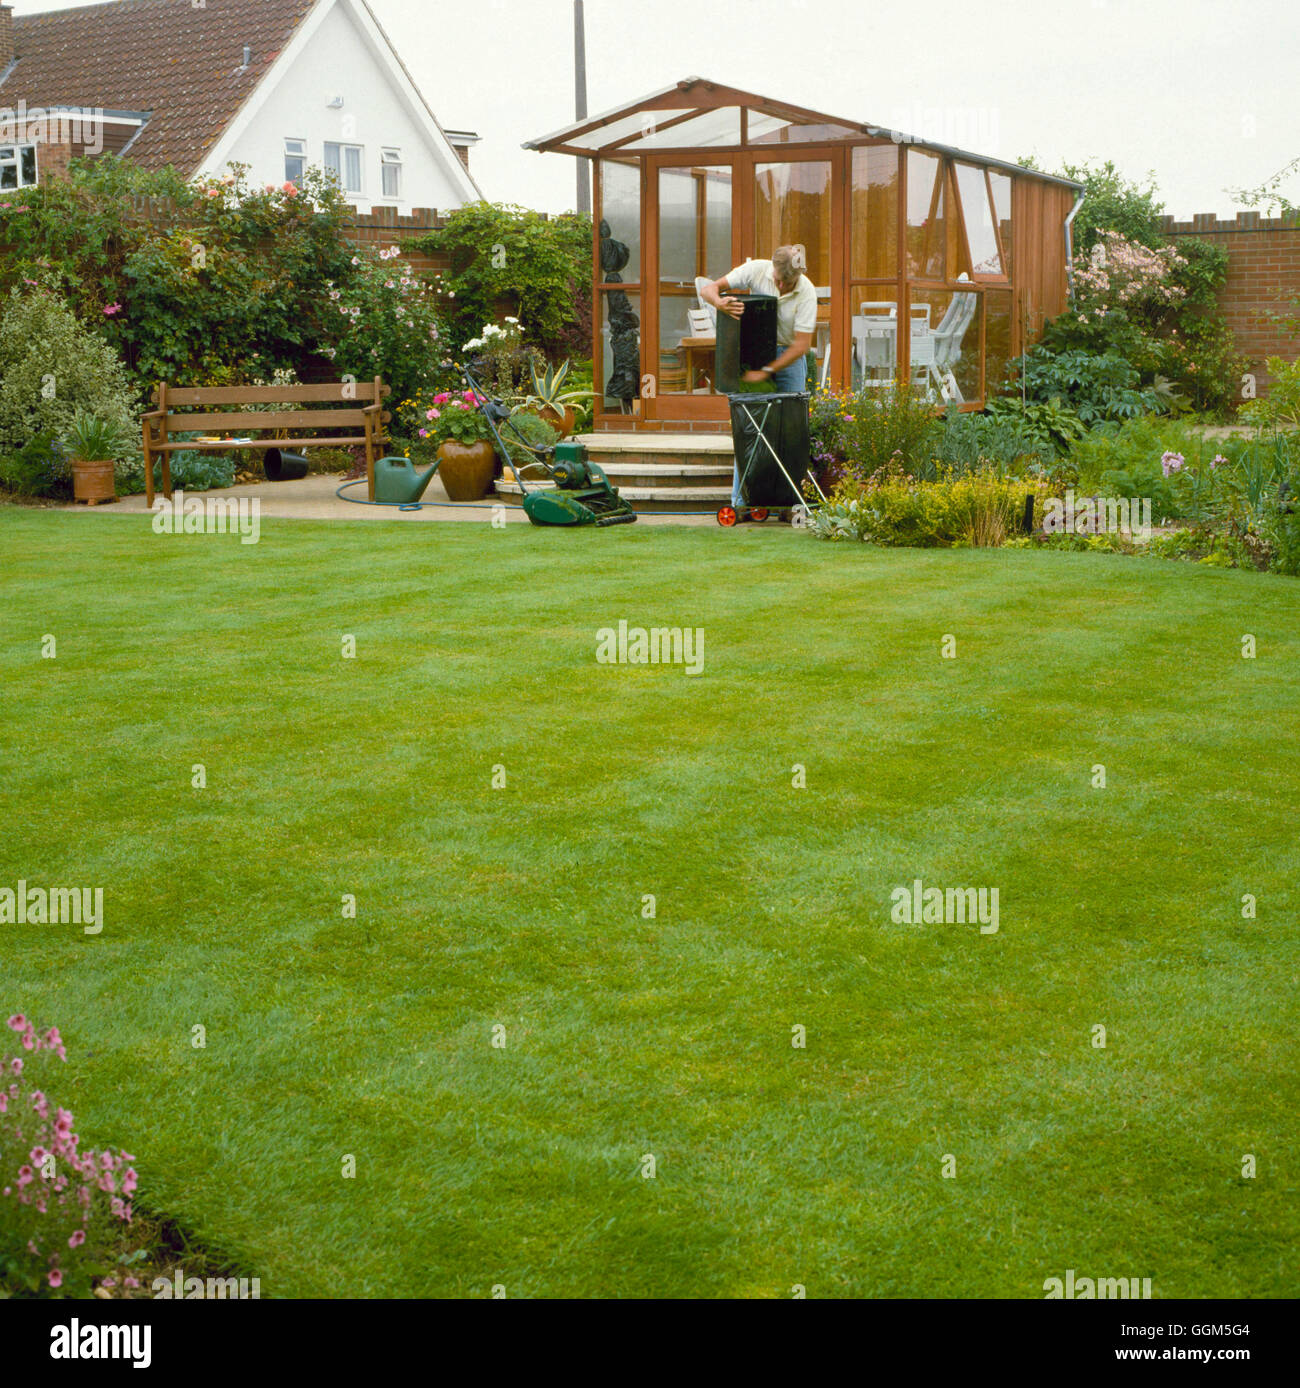 Lawn Care - Collecting up grass clippings   TAS045221 - Stock Image